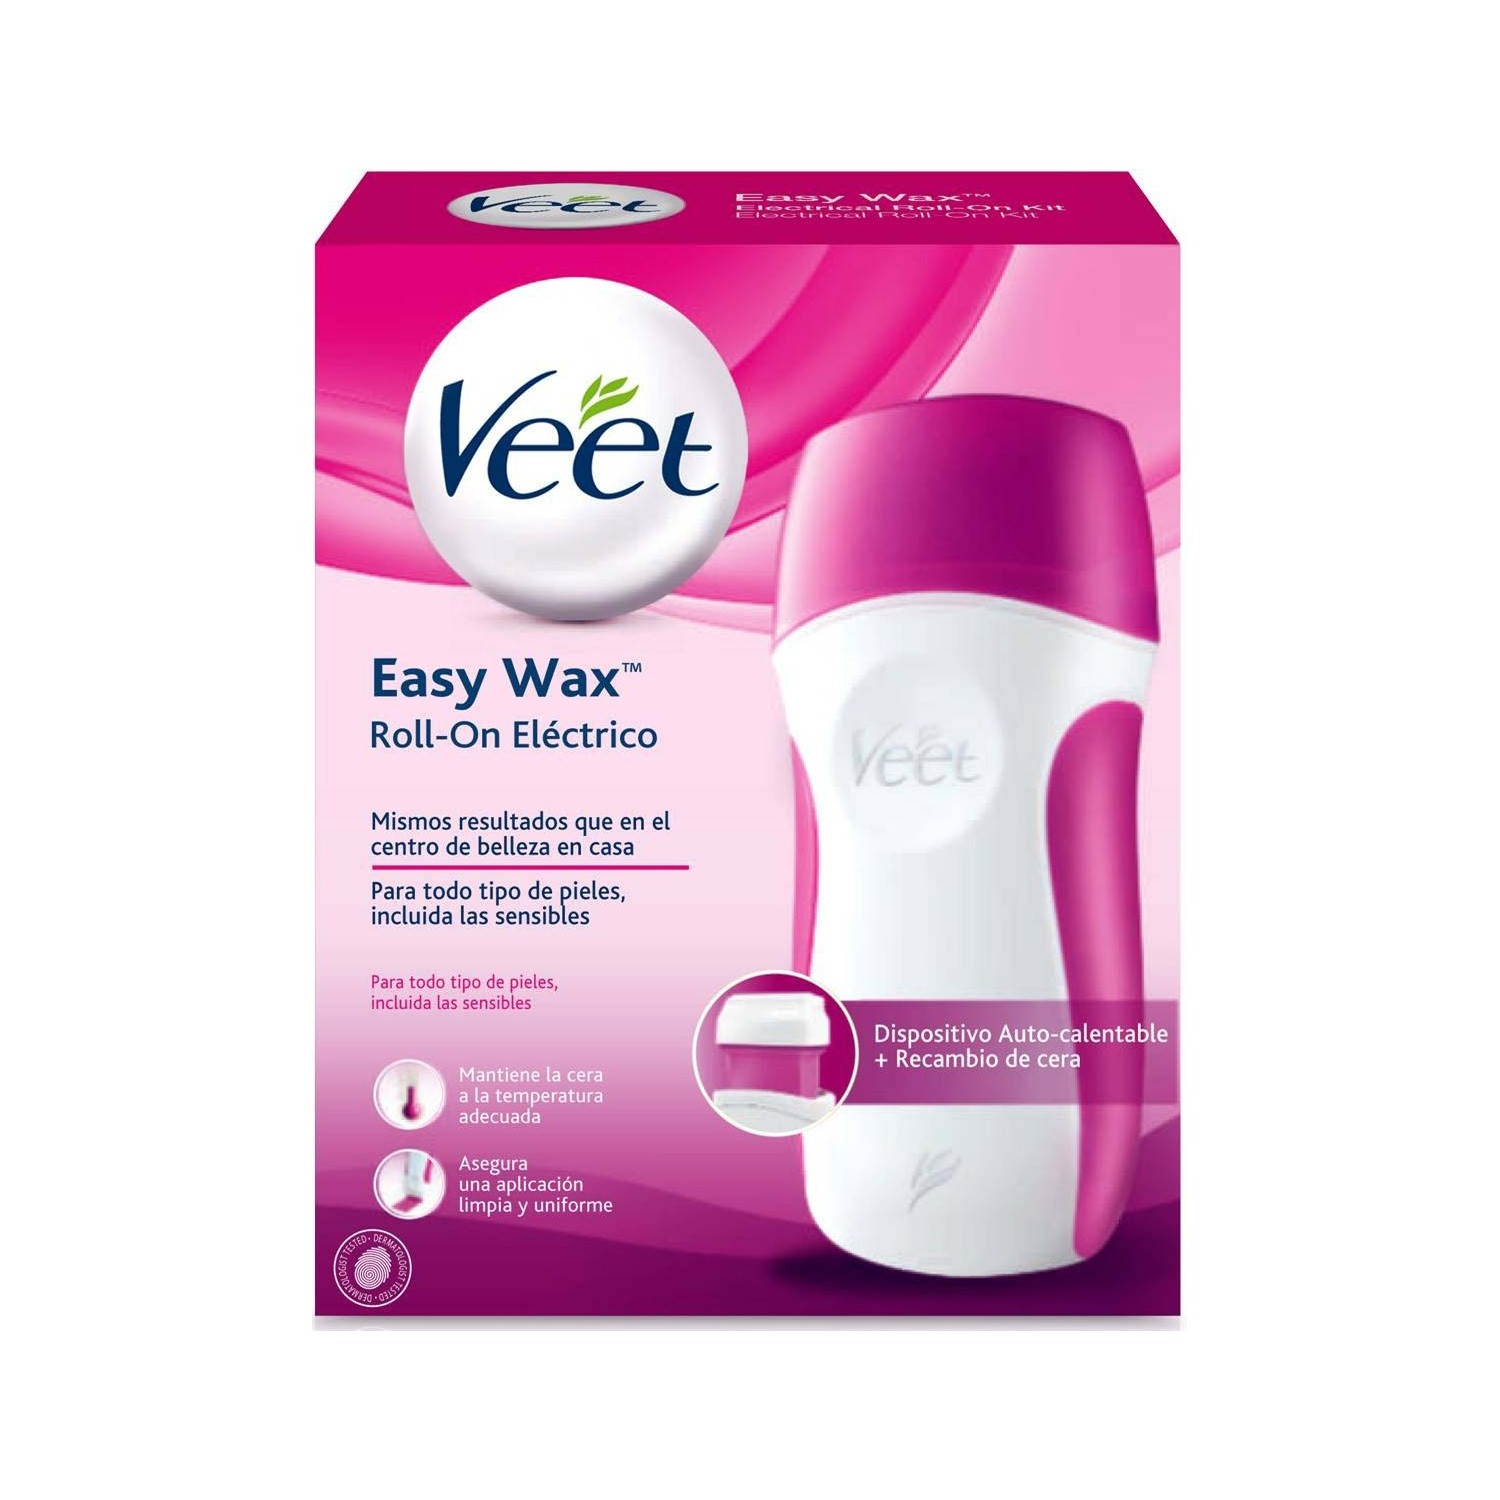 Veet kit cera tibia easy wax roll on electrico con dispositivo auto calentable recambio estuche